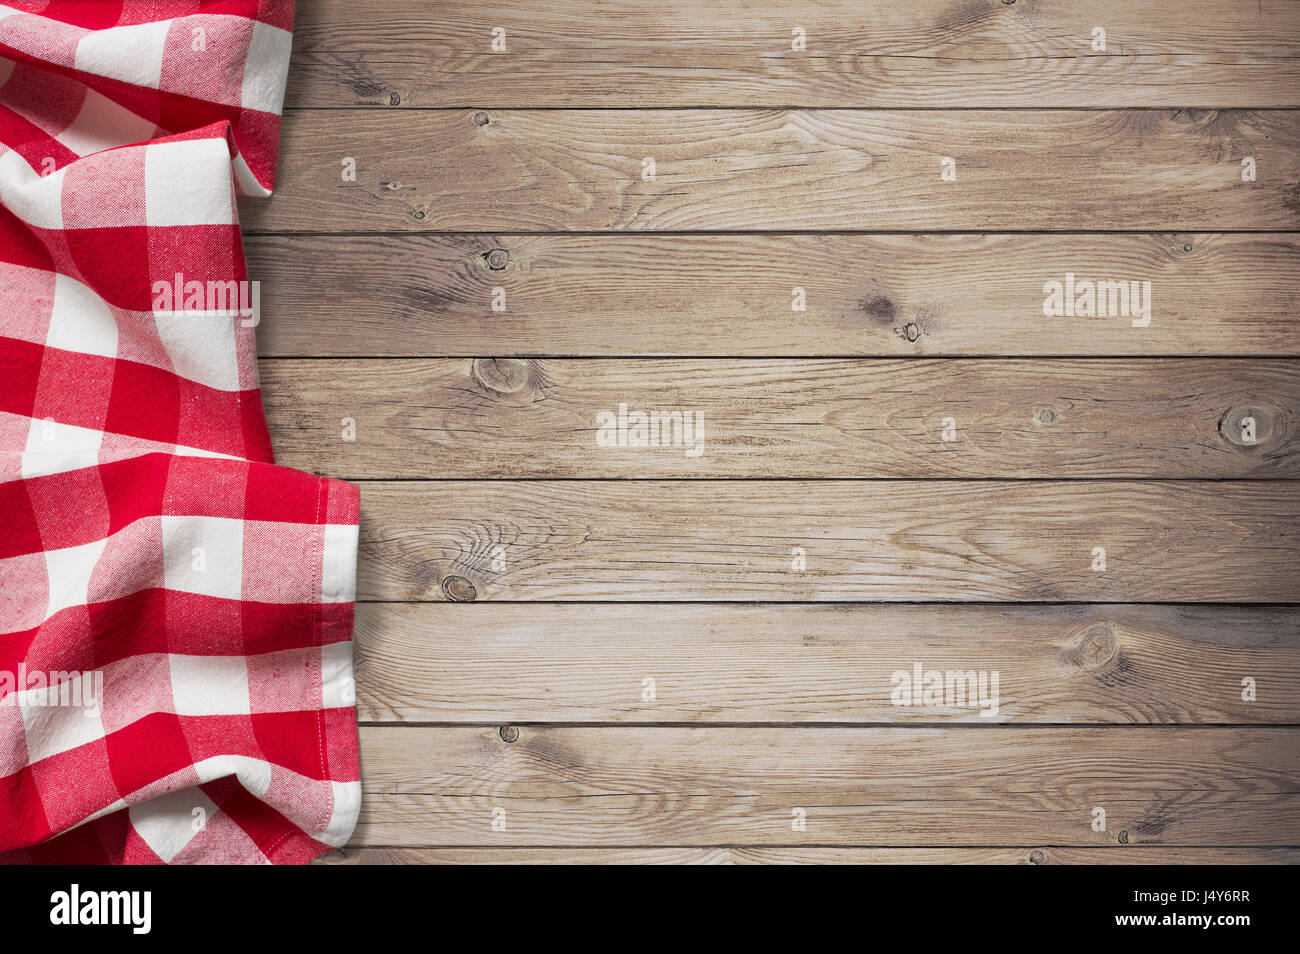 Charmant Red Picnic Tablecloth On Wood Table Background Stock Photo ...